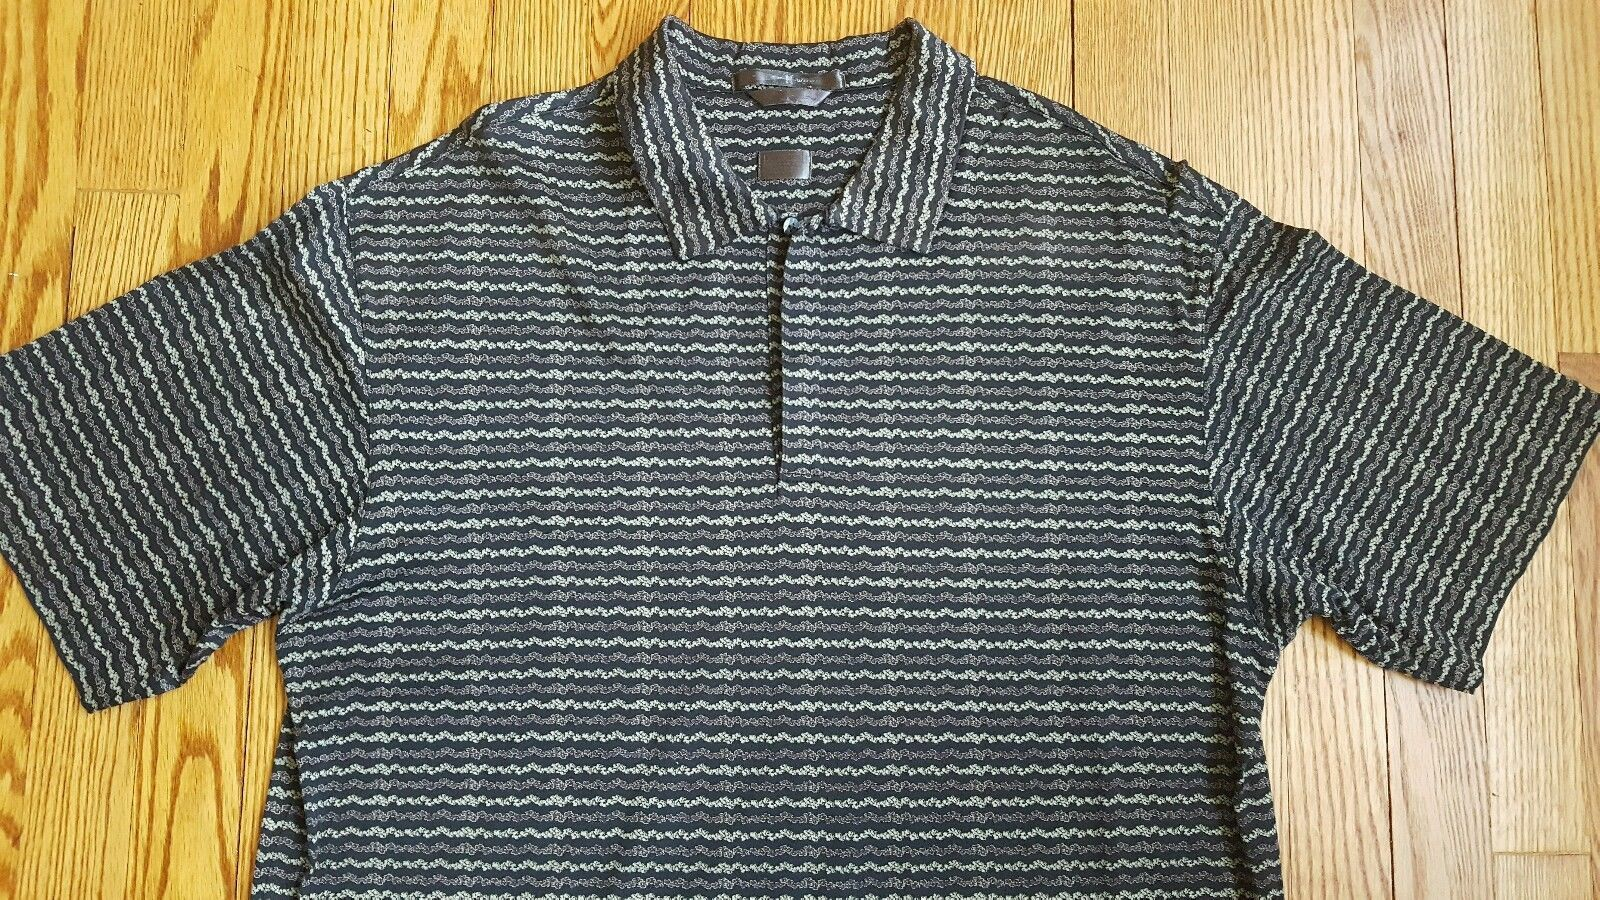 TIGER WOODS Men's Nike Golf Polo Rugby Shirt Size Large 100% Cotton Black